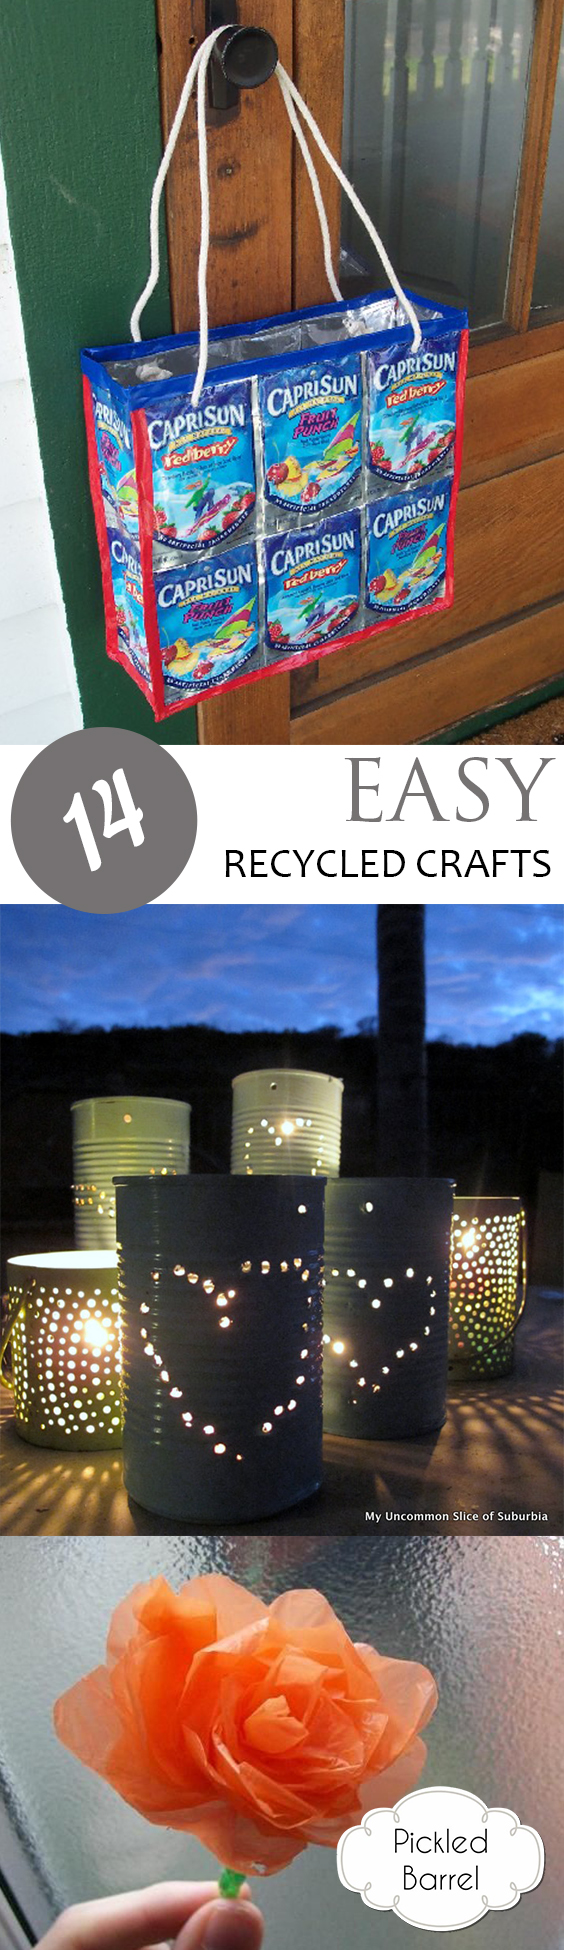 Recycled Crafts, Repurpose Projects, Craft Projects, Craft Project Ideas, Easy Craft Projects, Craft Projects for Kids, Craft Projects Using Leftover Materials, Upcycling Projects, Popular Pin